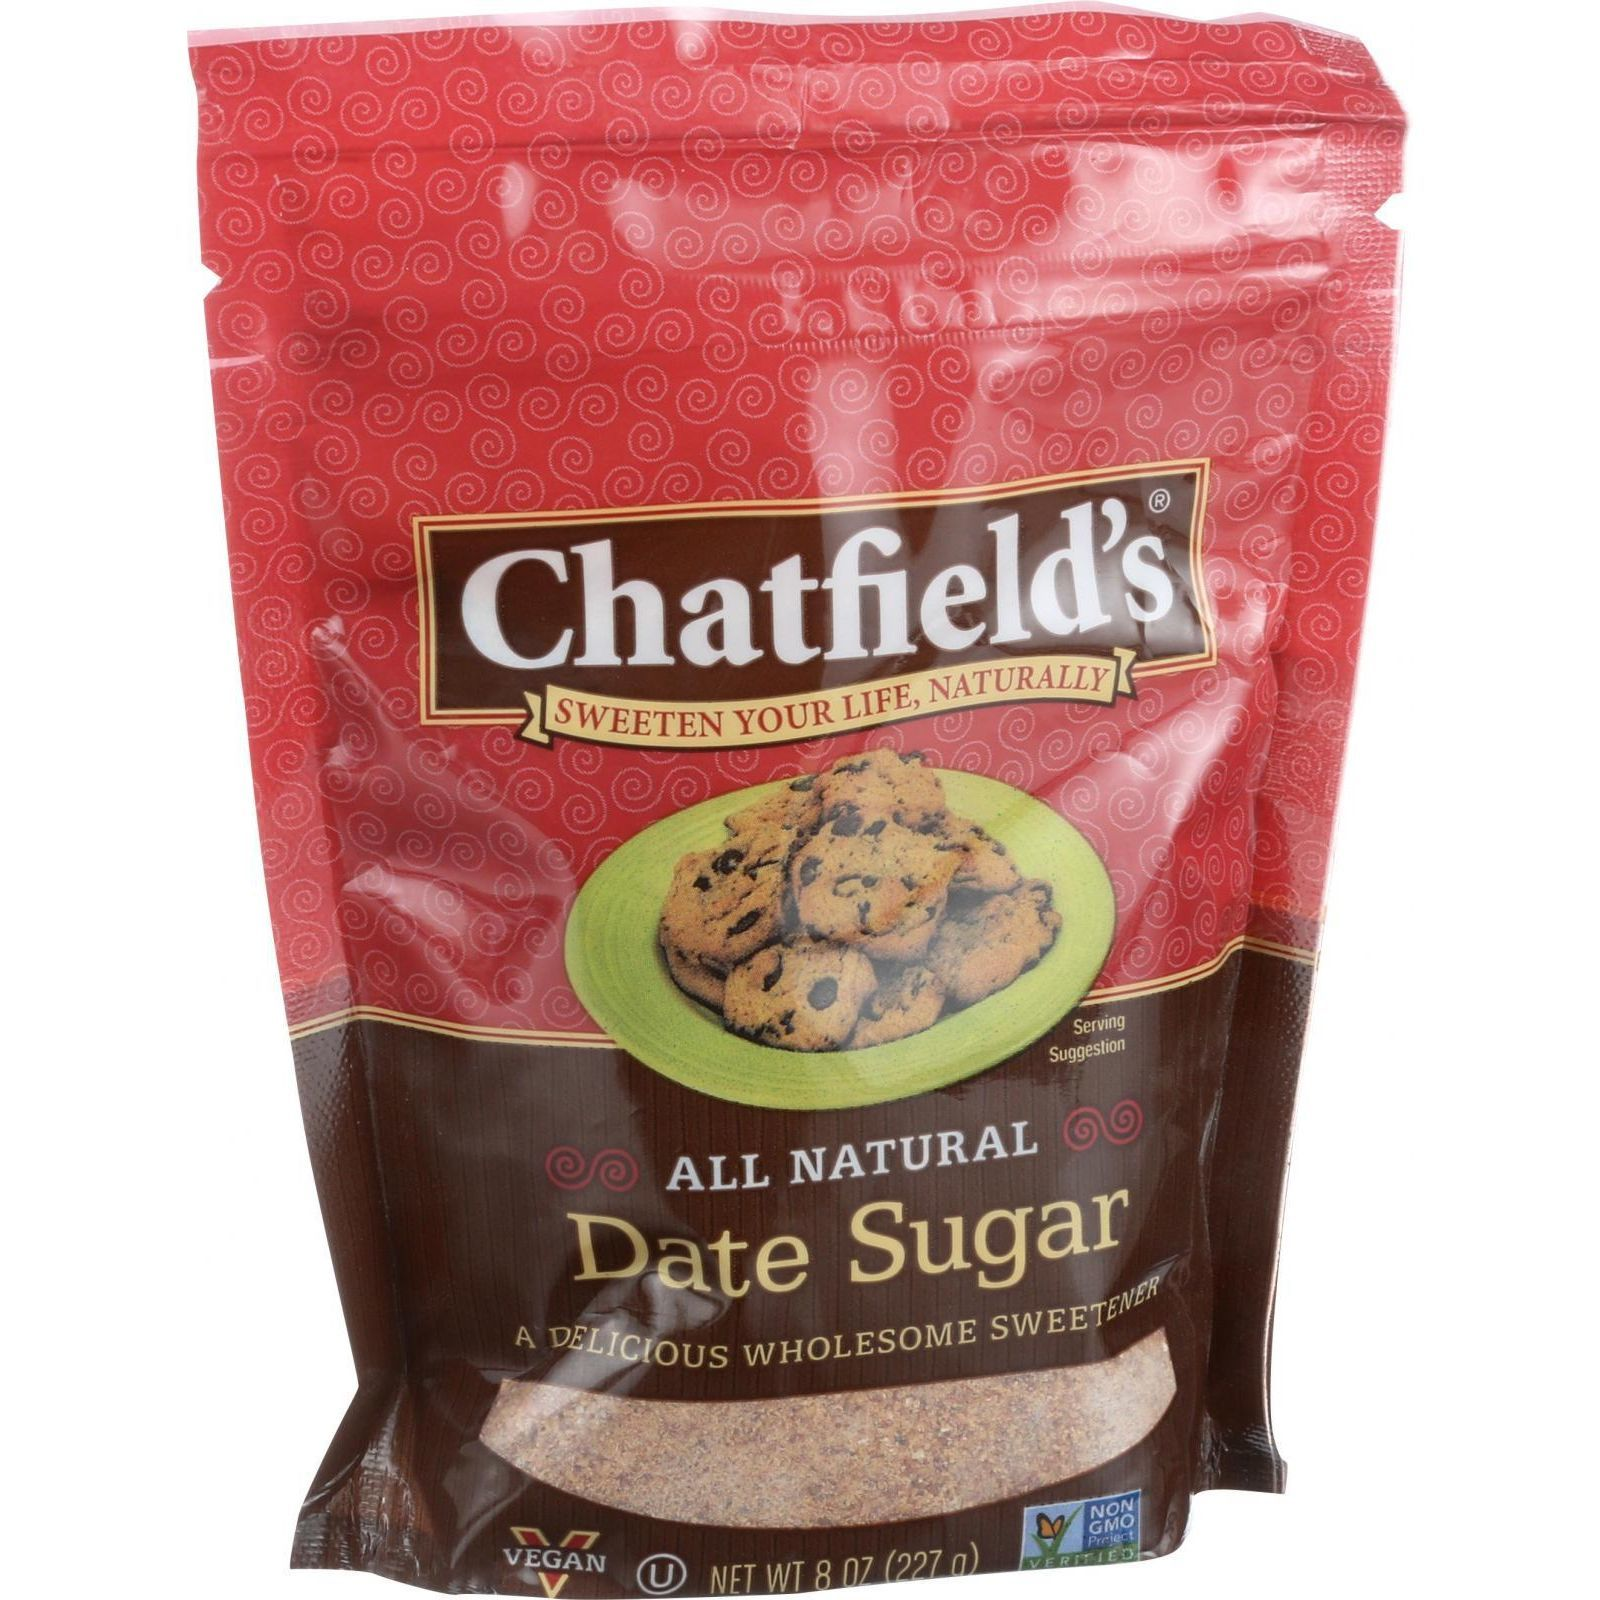 Chatfield's All Natural Date Sugar - 8 oz